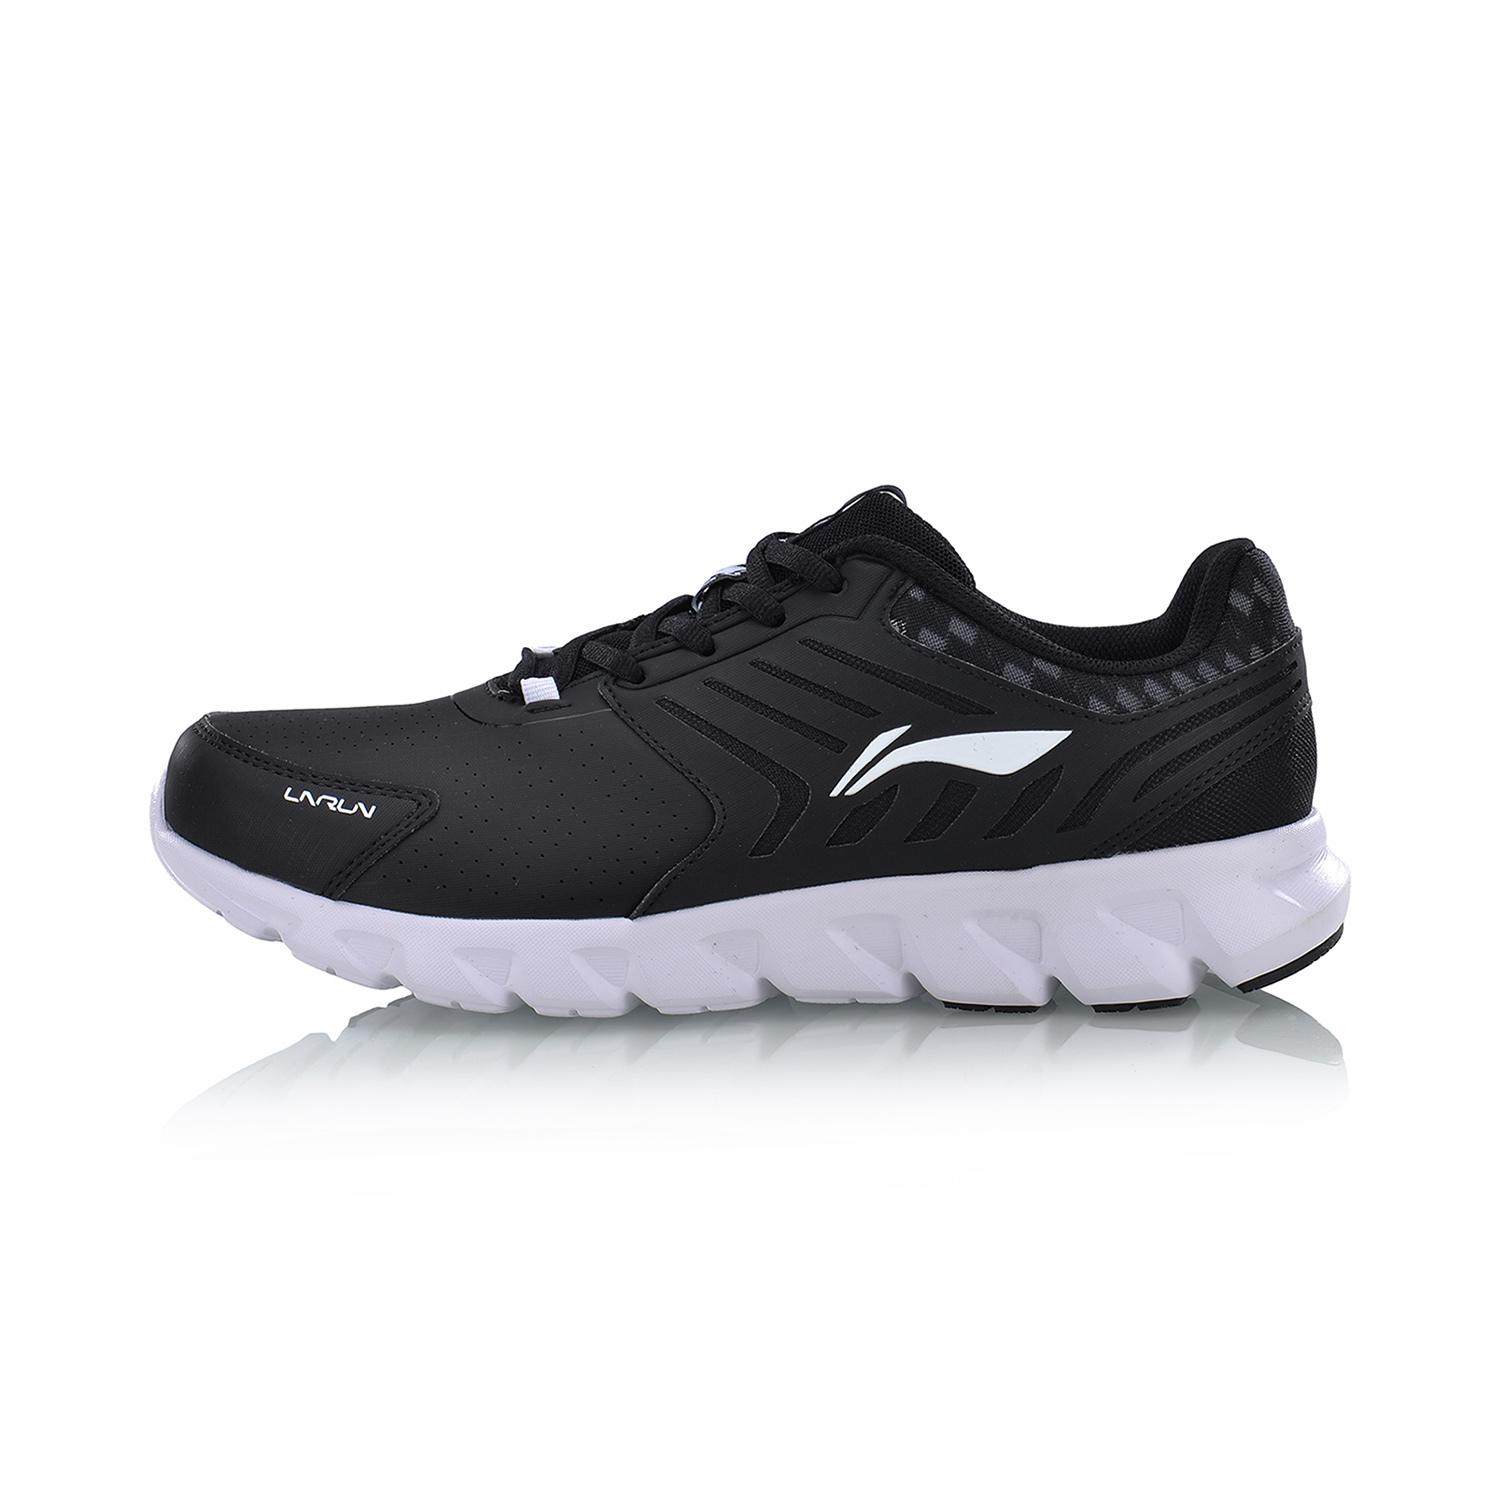 Li Ning Autumn New Style Damping Lightweight Couple S Shoes Running Basic Black